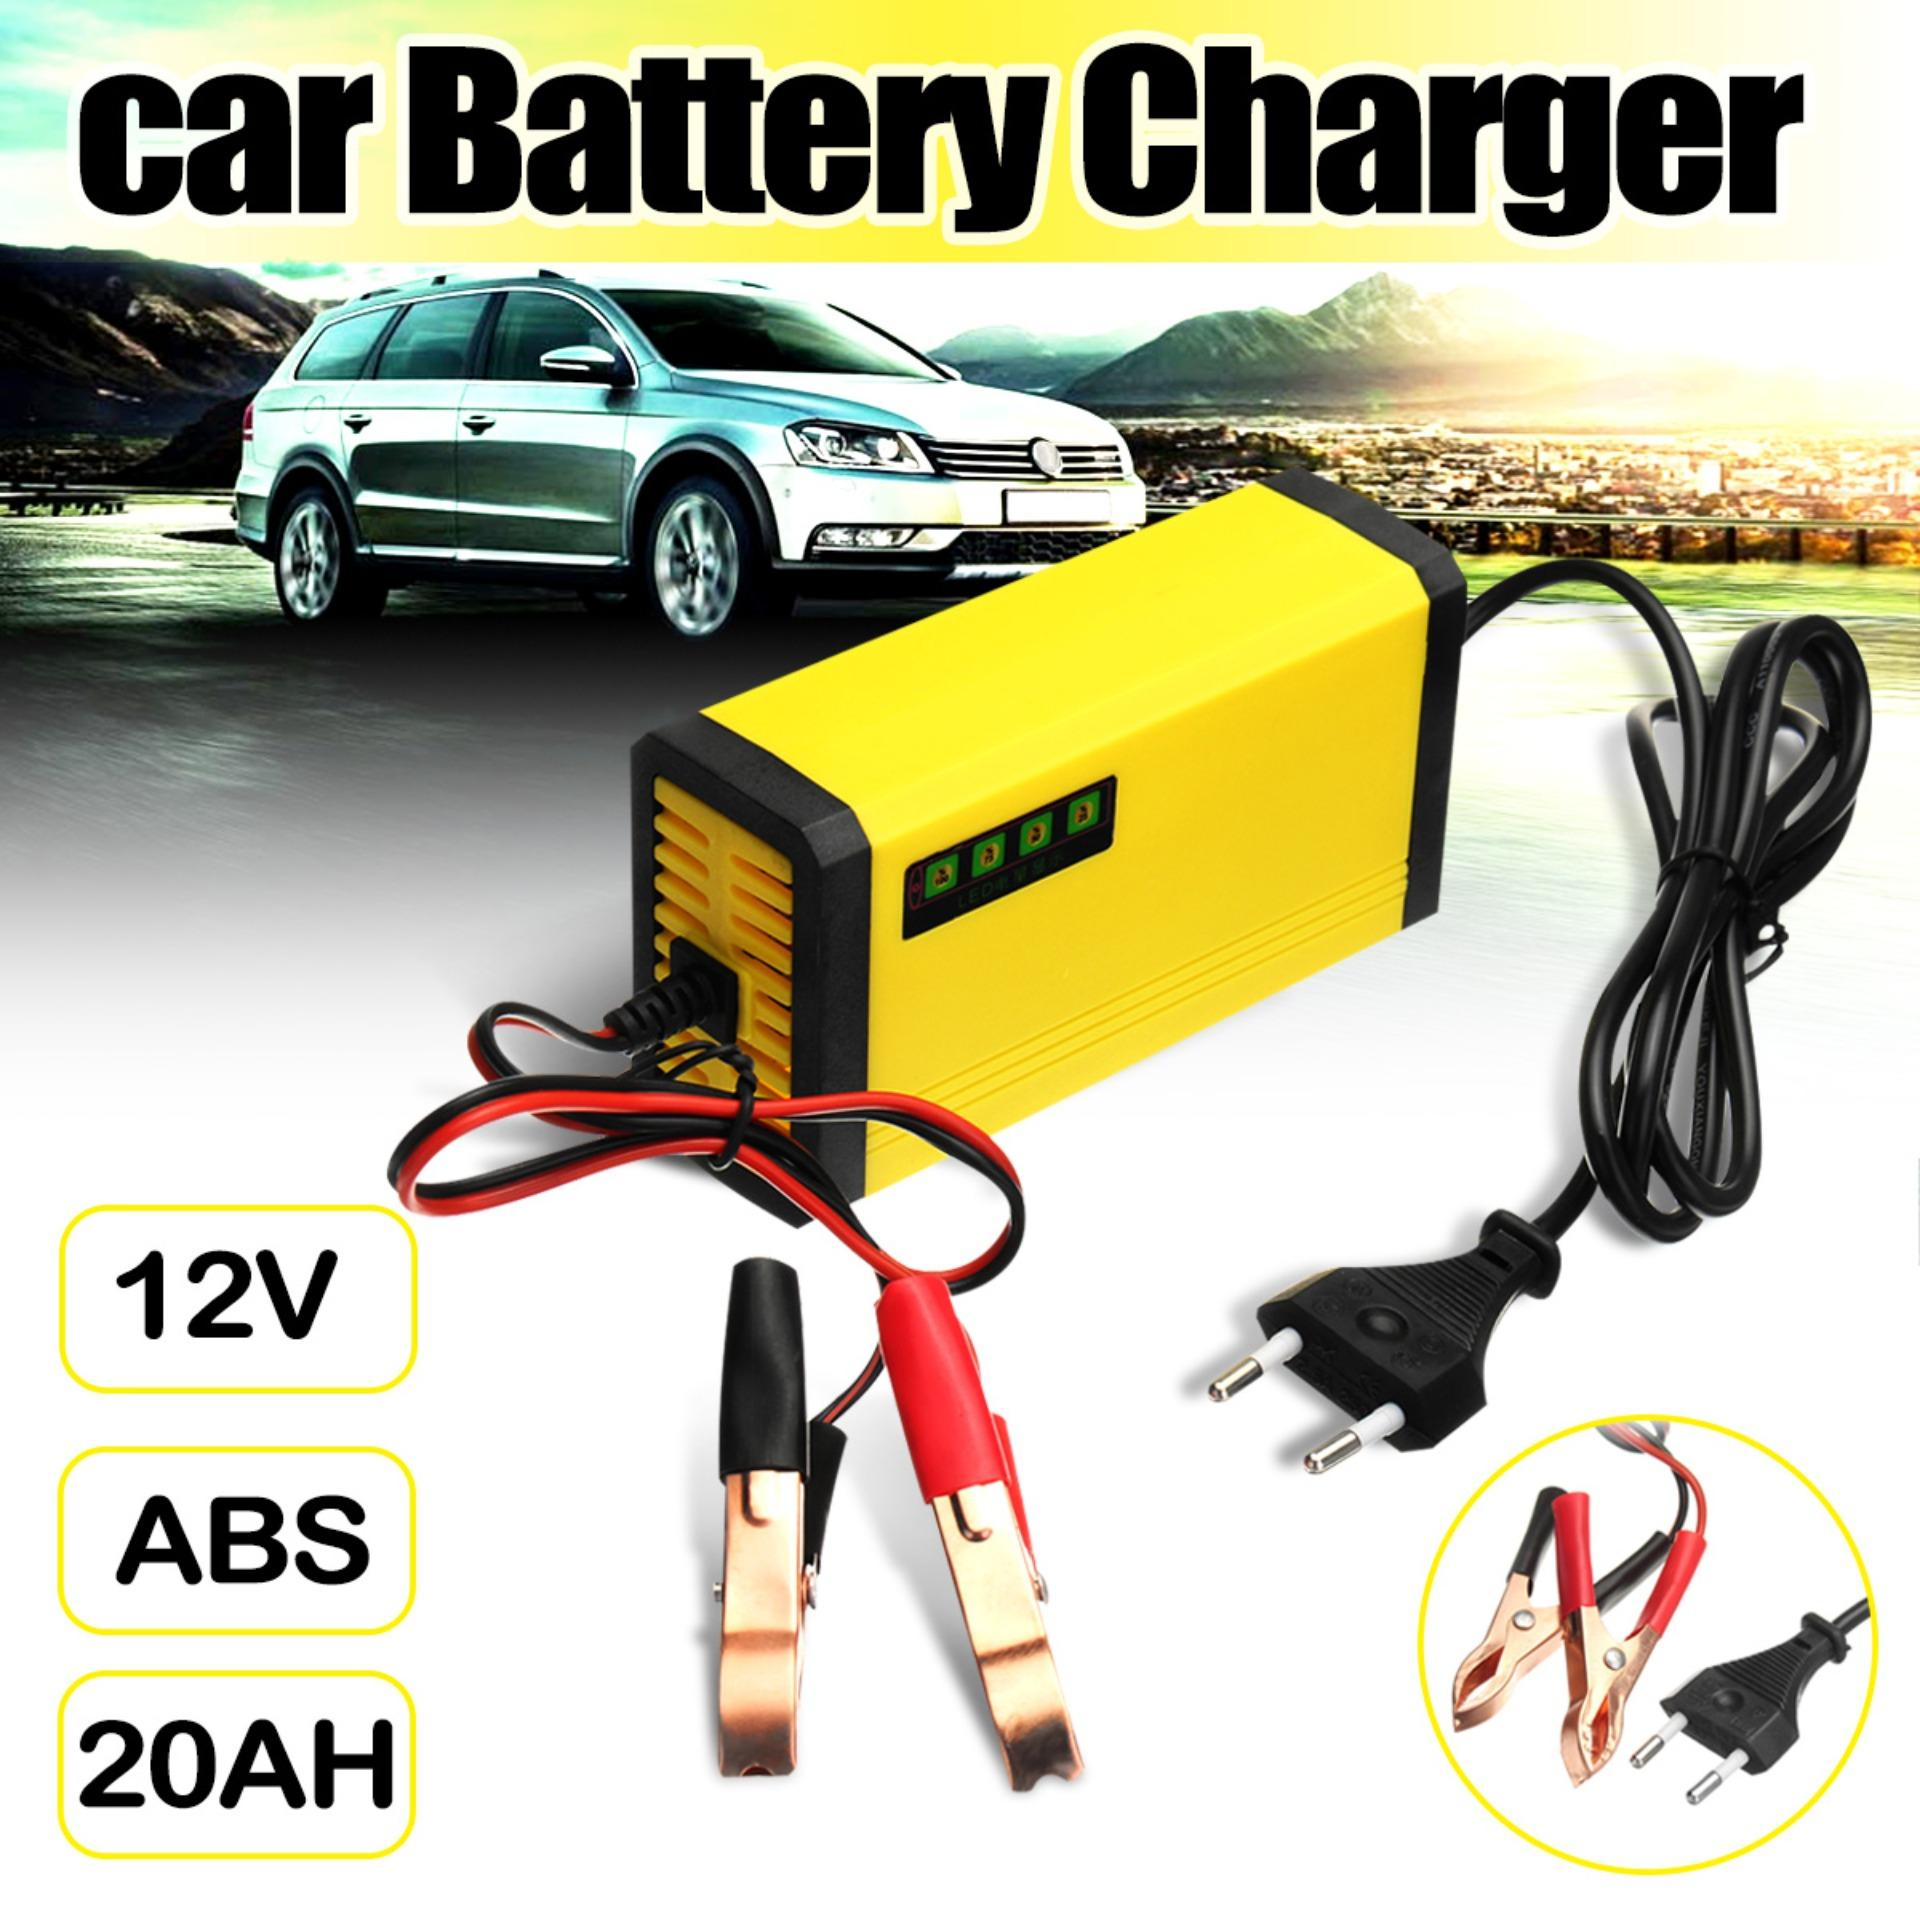 【free Shipping + Super Deal + Support Cash On Delivery】car Battery Charger 12v 2ah-20ah Motorcycle Smart Automatic Maintainer Trickle By Audew.